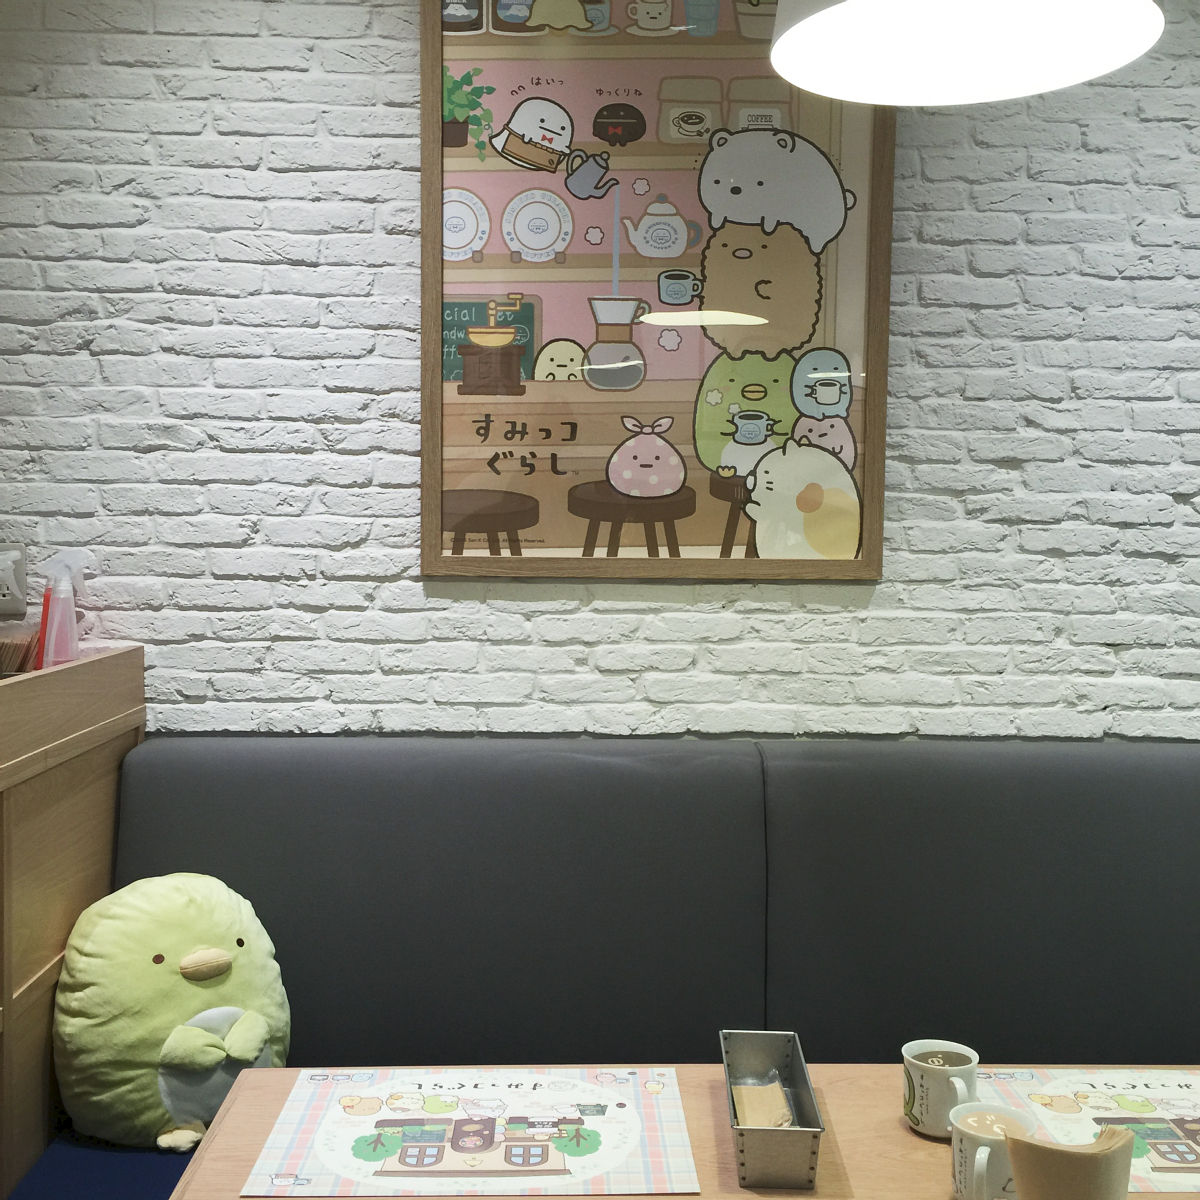 sumikko-gurashi-cafe-kit-box-kotobukiya-cafe-26